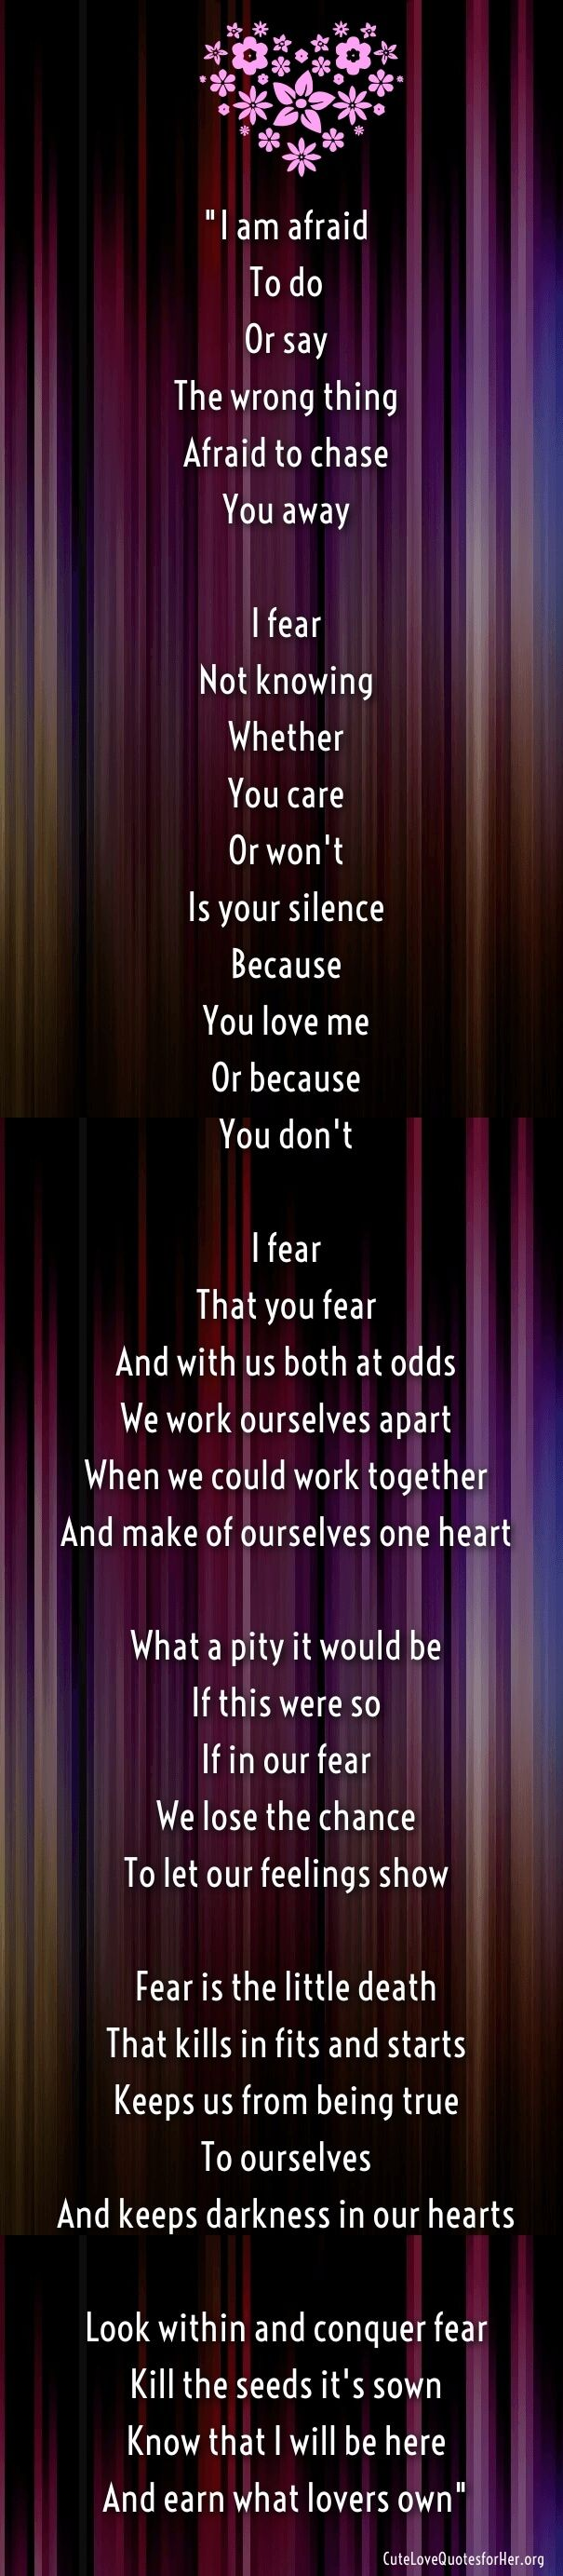 Unhealthy Relationship Poems Love Relationships Relationship